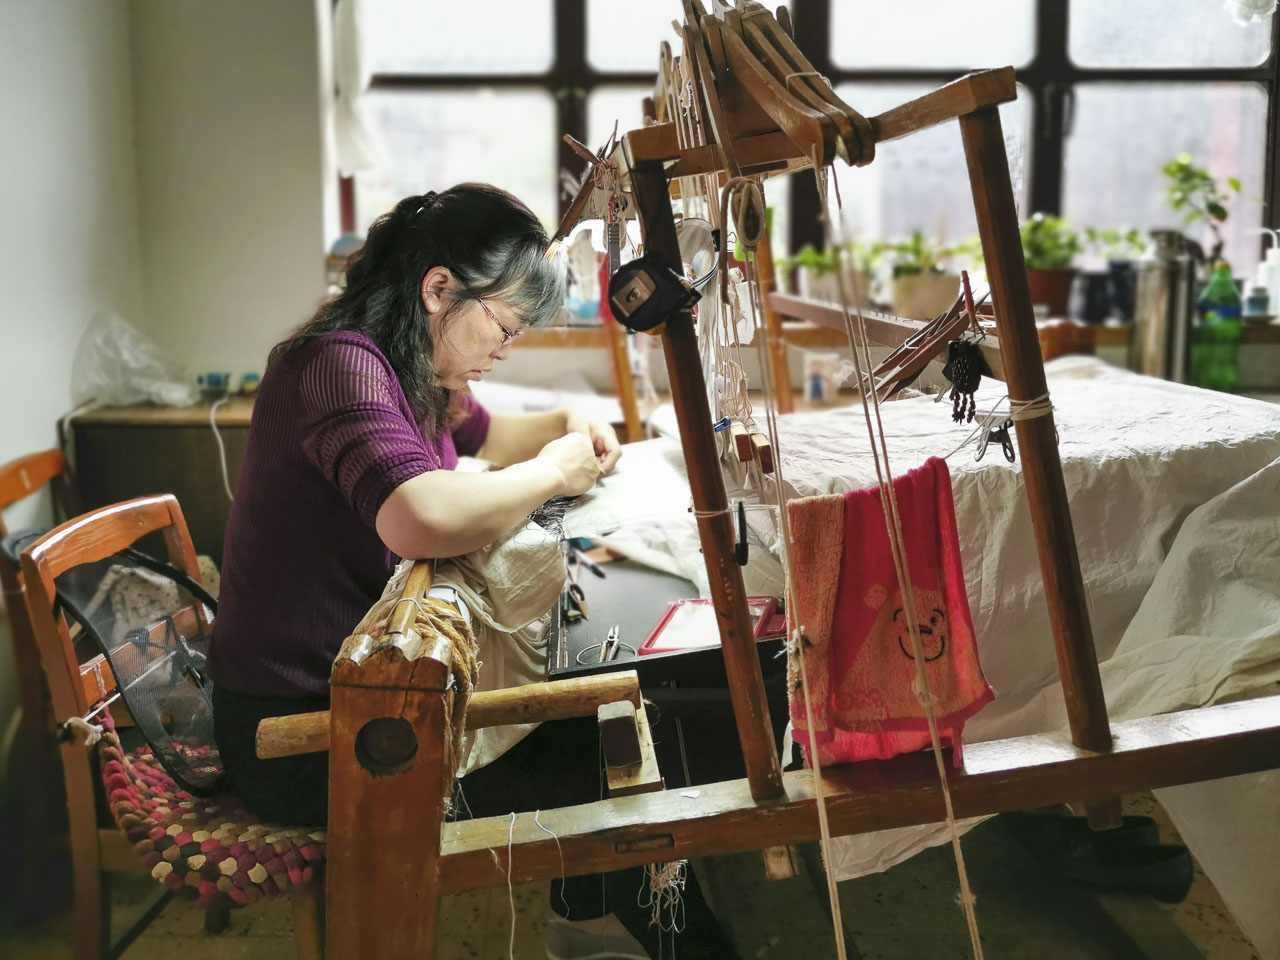 The Embroidery Institute of Suzhou